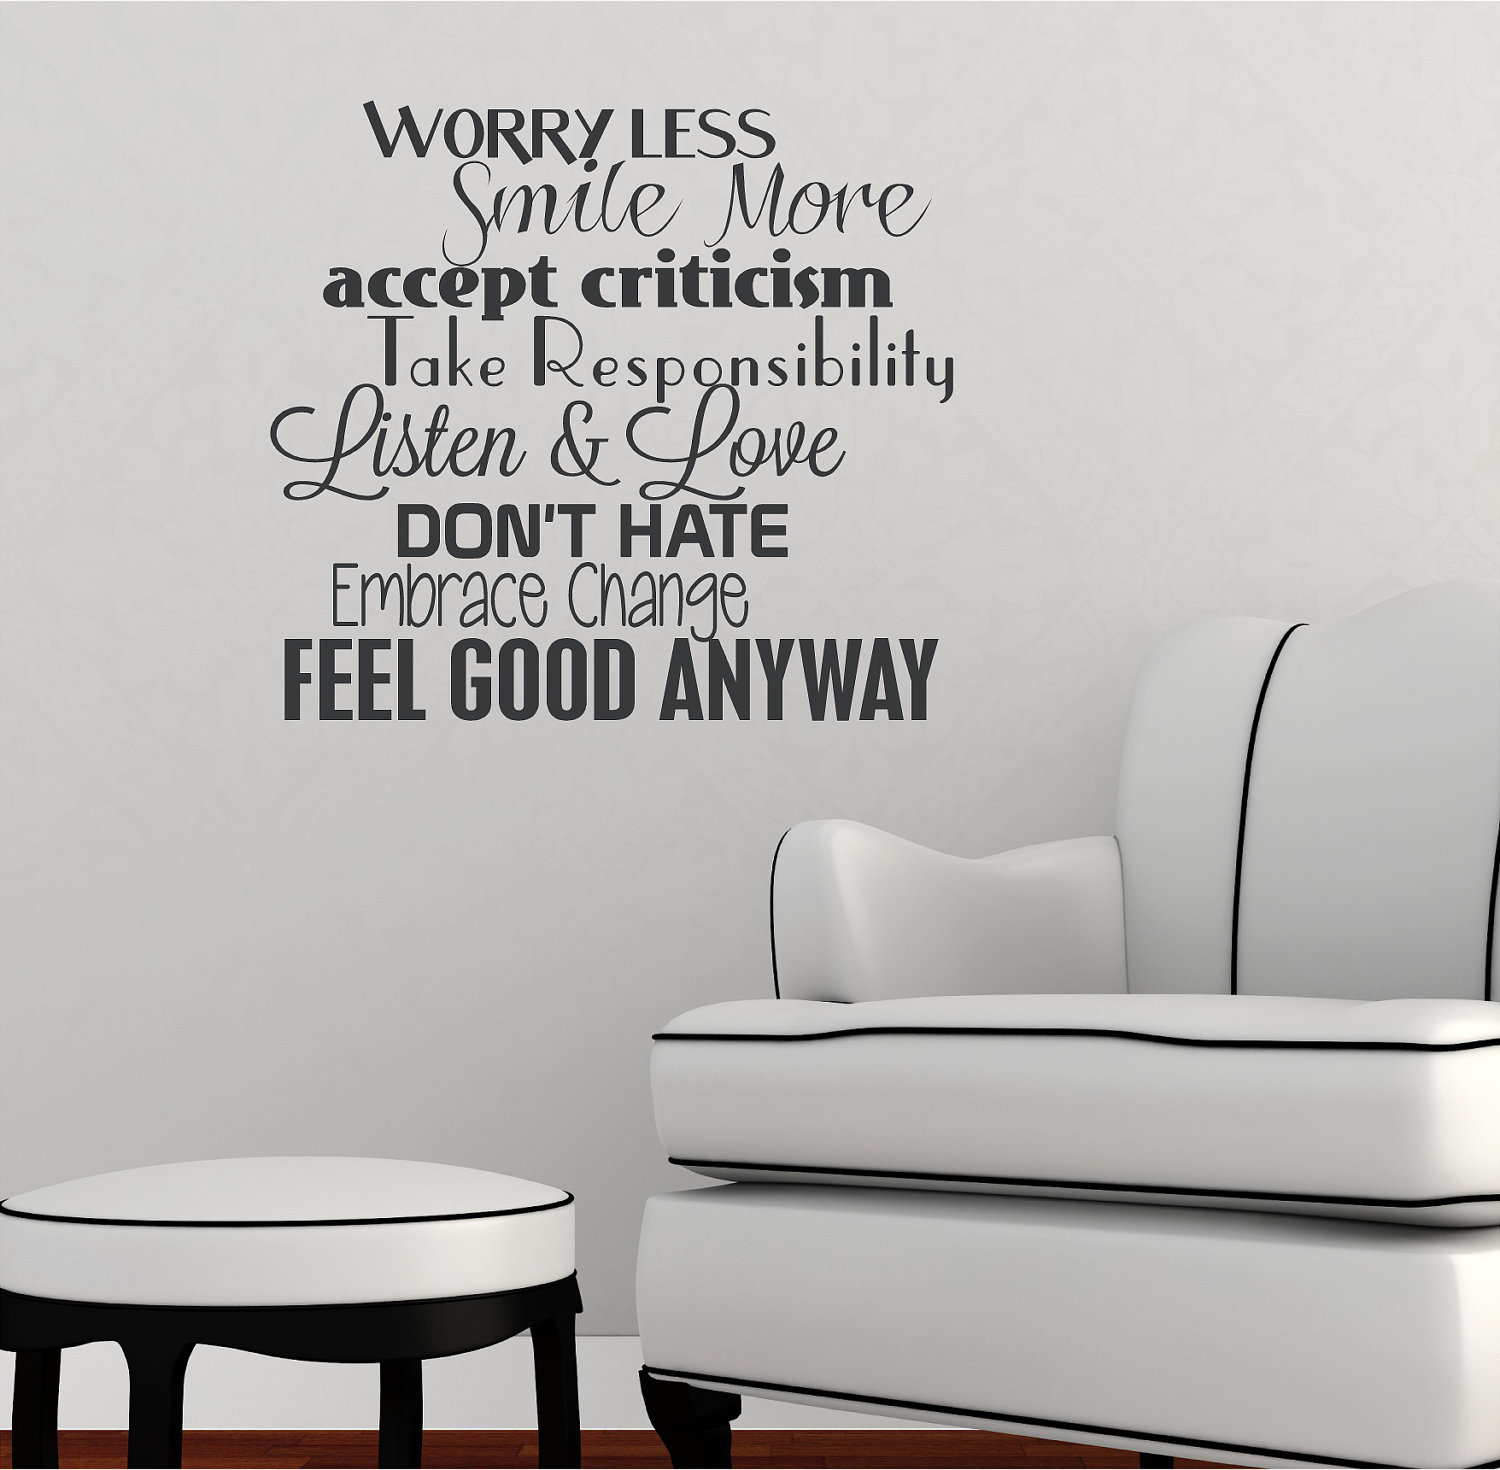 how to take hurtful criticism